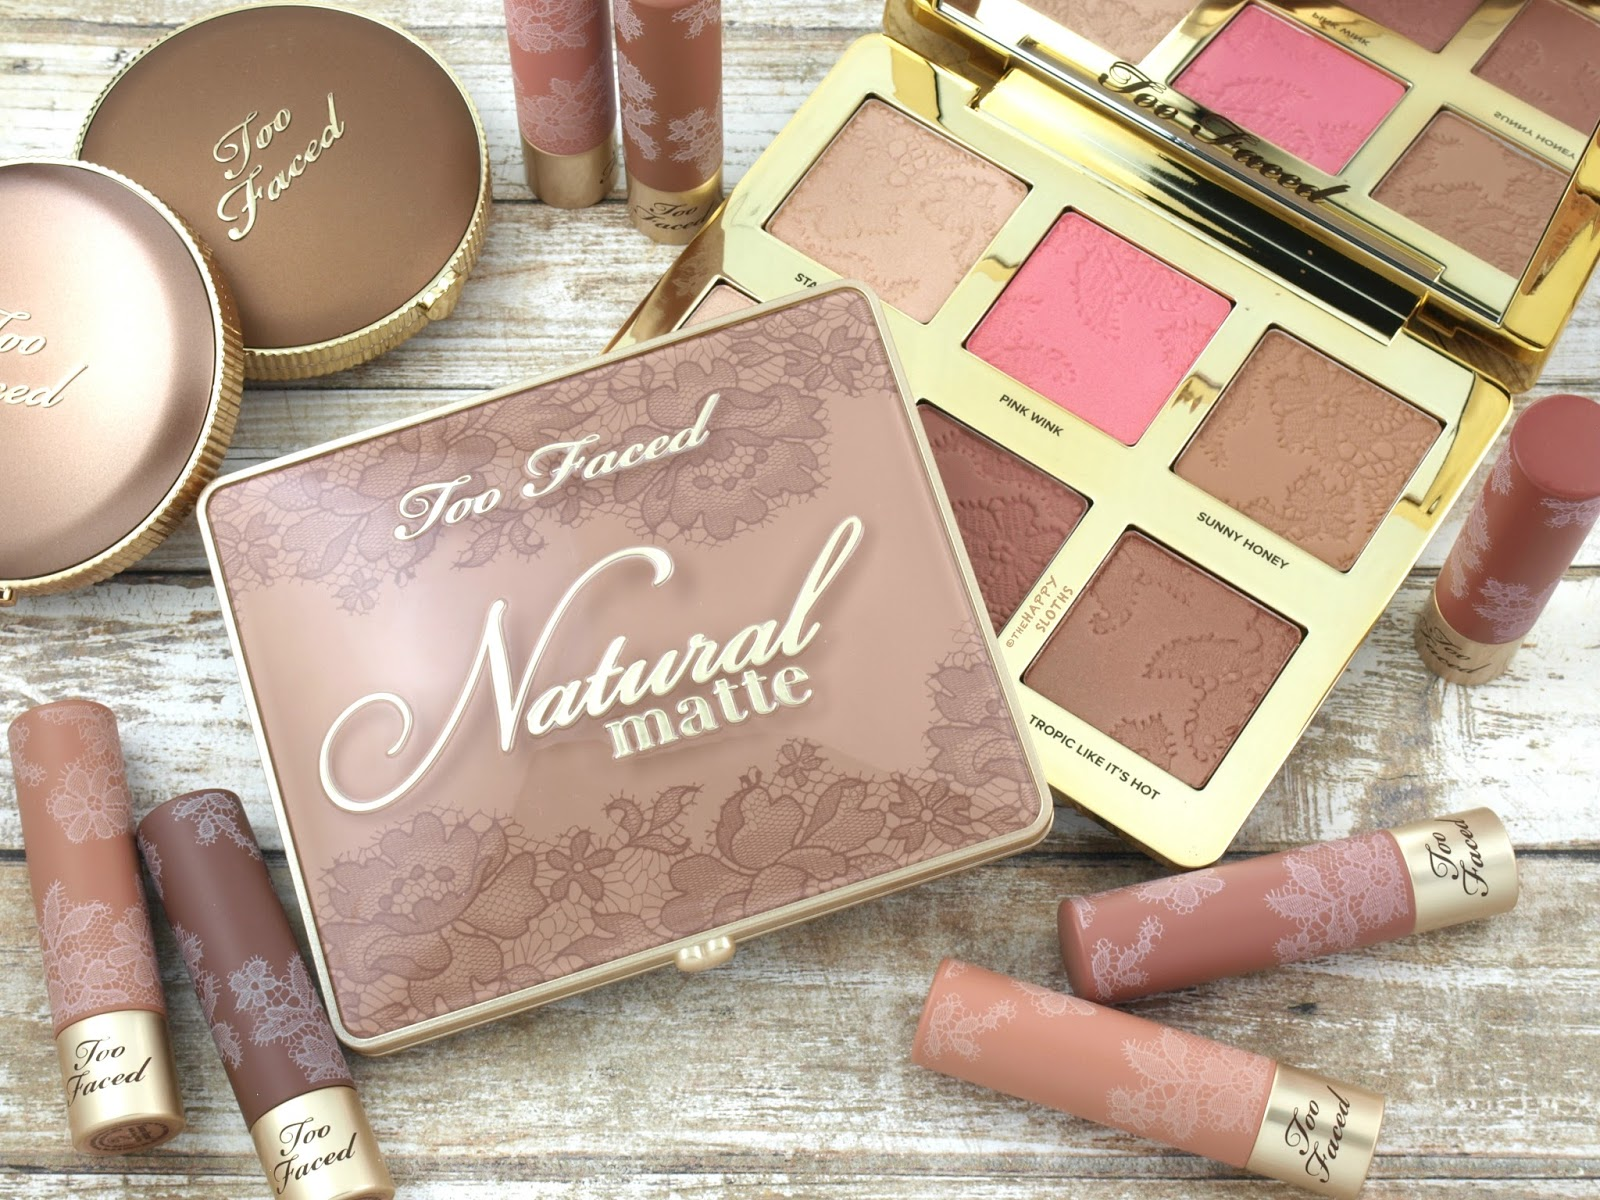 Too Faced Natural Face Makeup Palette & Natural Matte Eyeshadow Palette: Review and Swatches